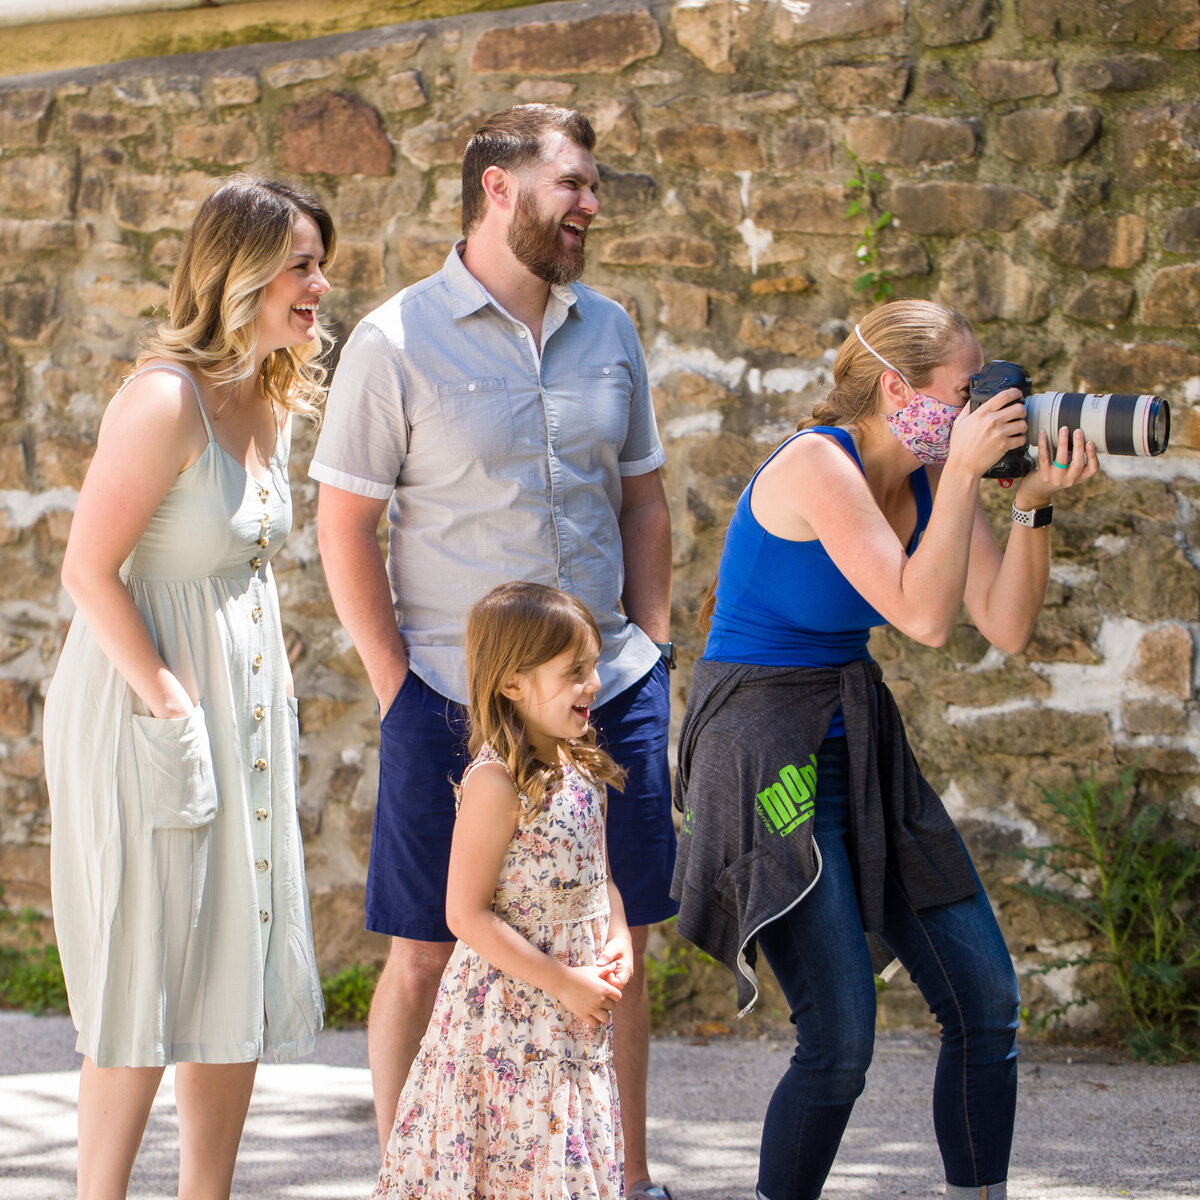 Behind the scenes with a family photographer at a Phoenixville mini session photography event